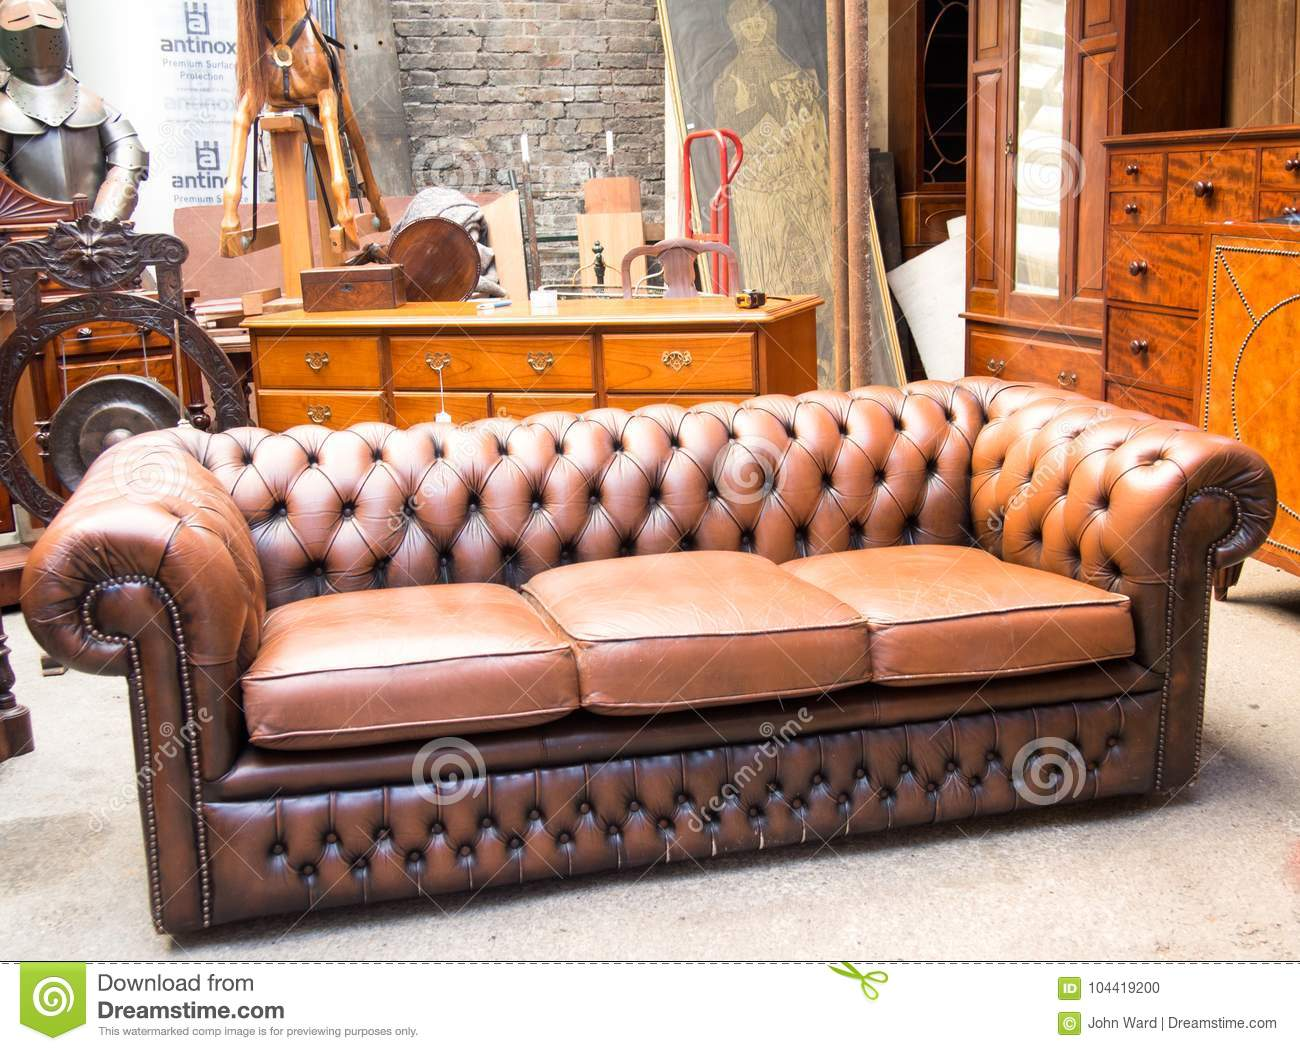 Picture of: 1 082 Chesterfield Sofa Photos Free Royalty Free Stock Photos From Dreamstime